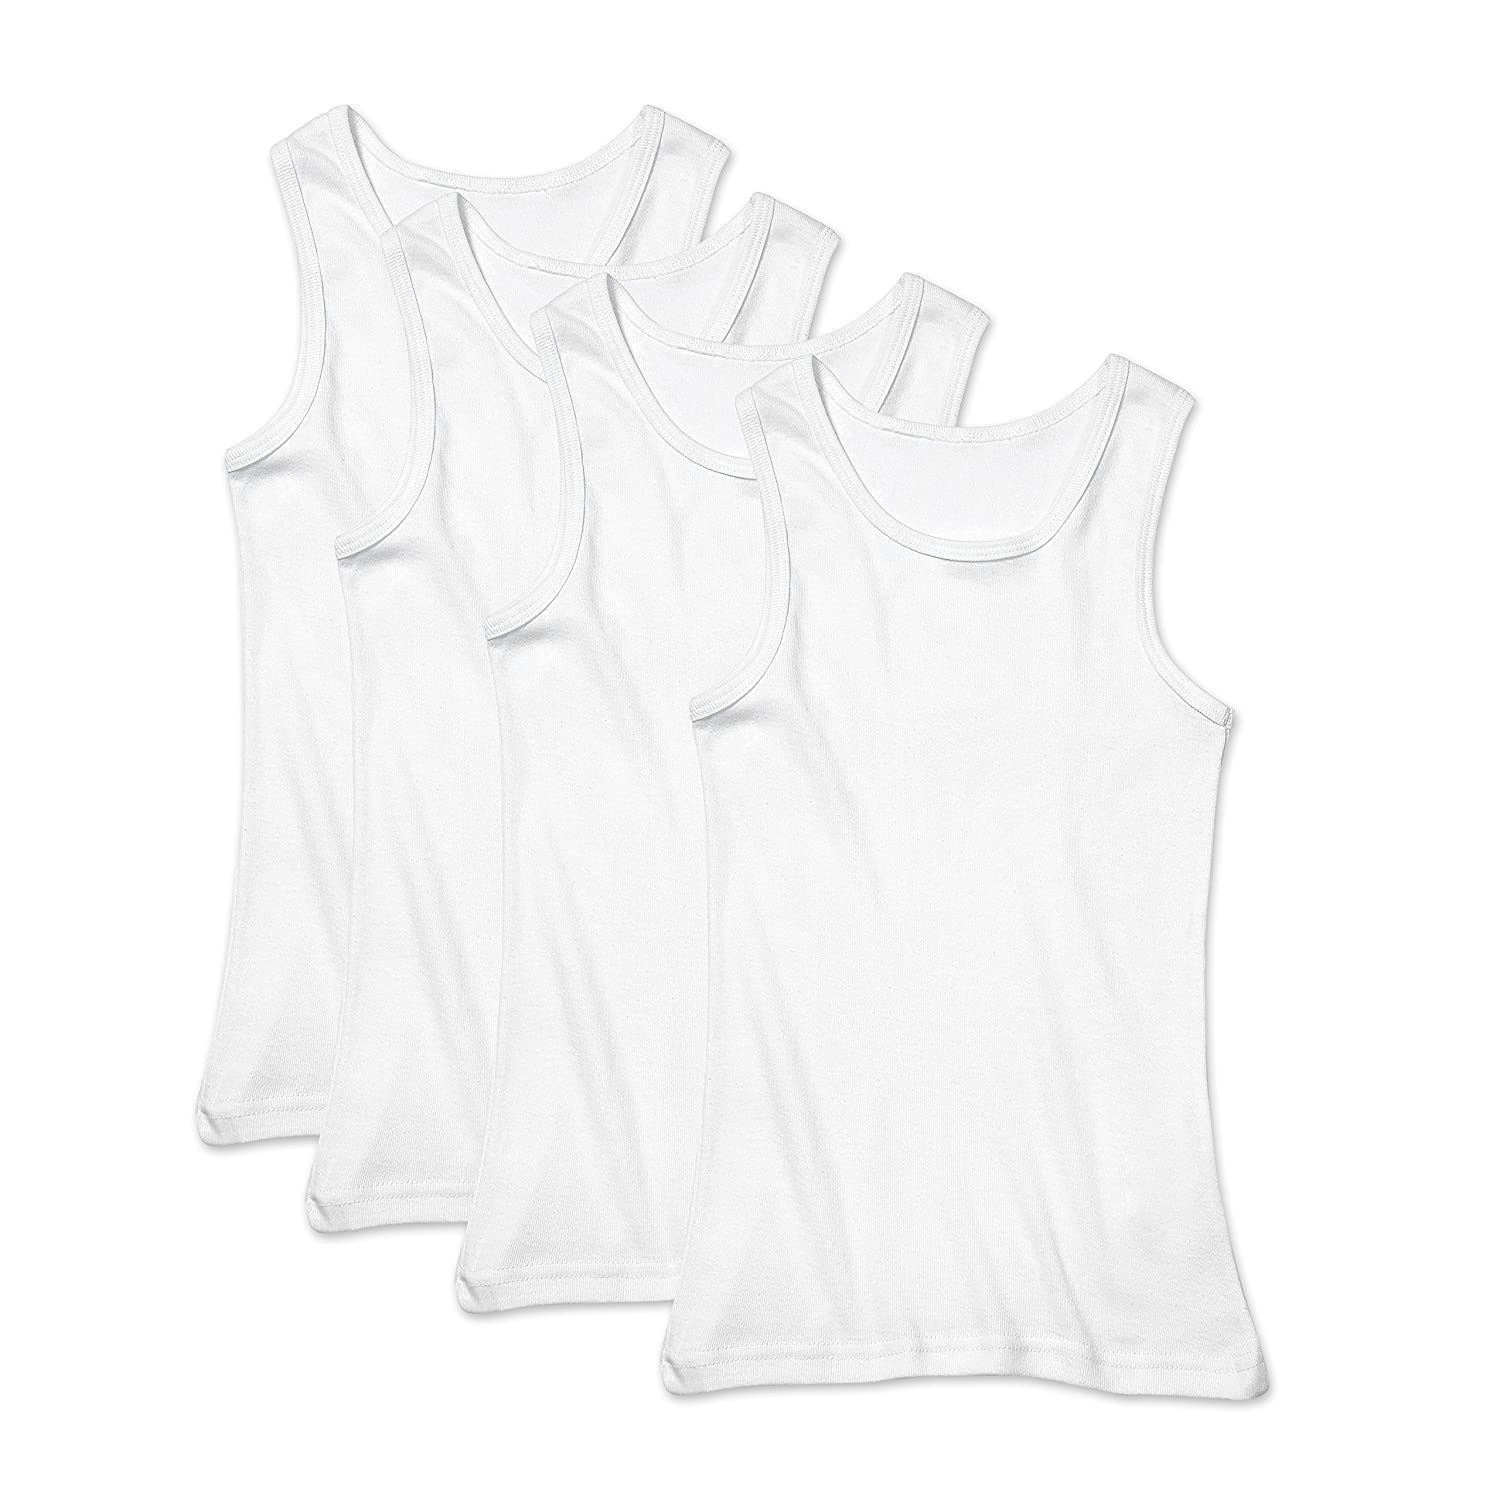 Buyless Fashion Boys Undershirts Tank Top White Soft Cotton Pack of 4